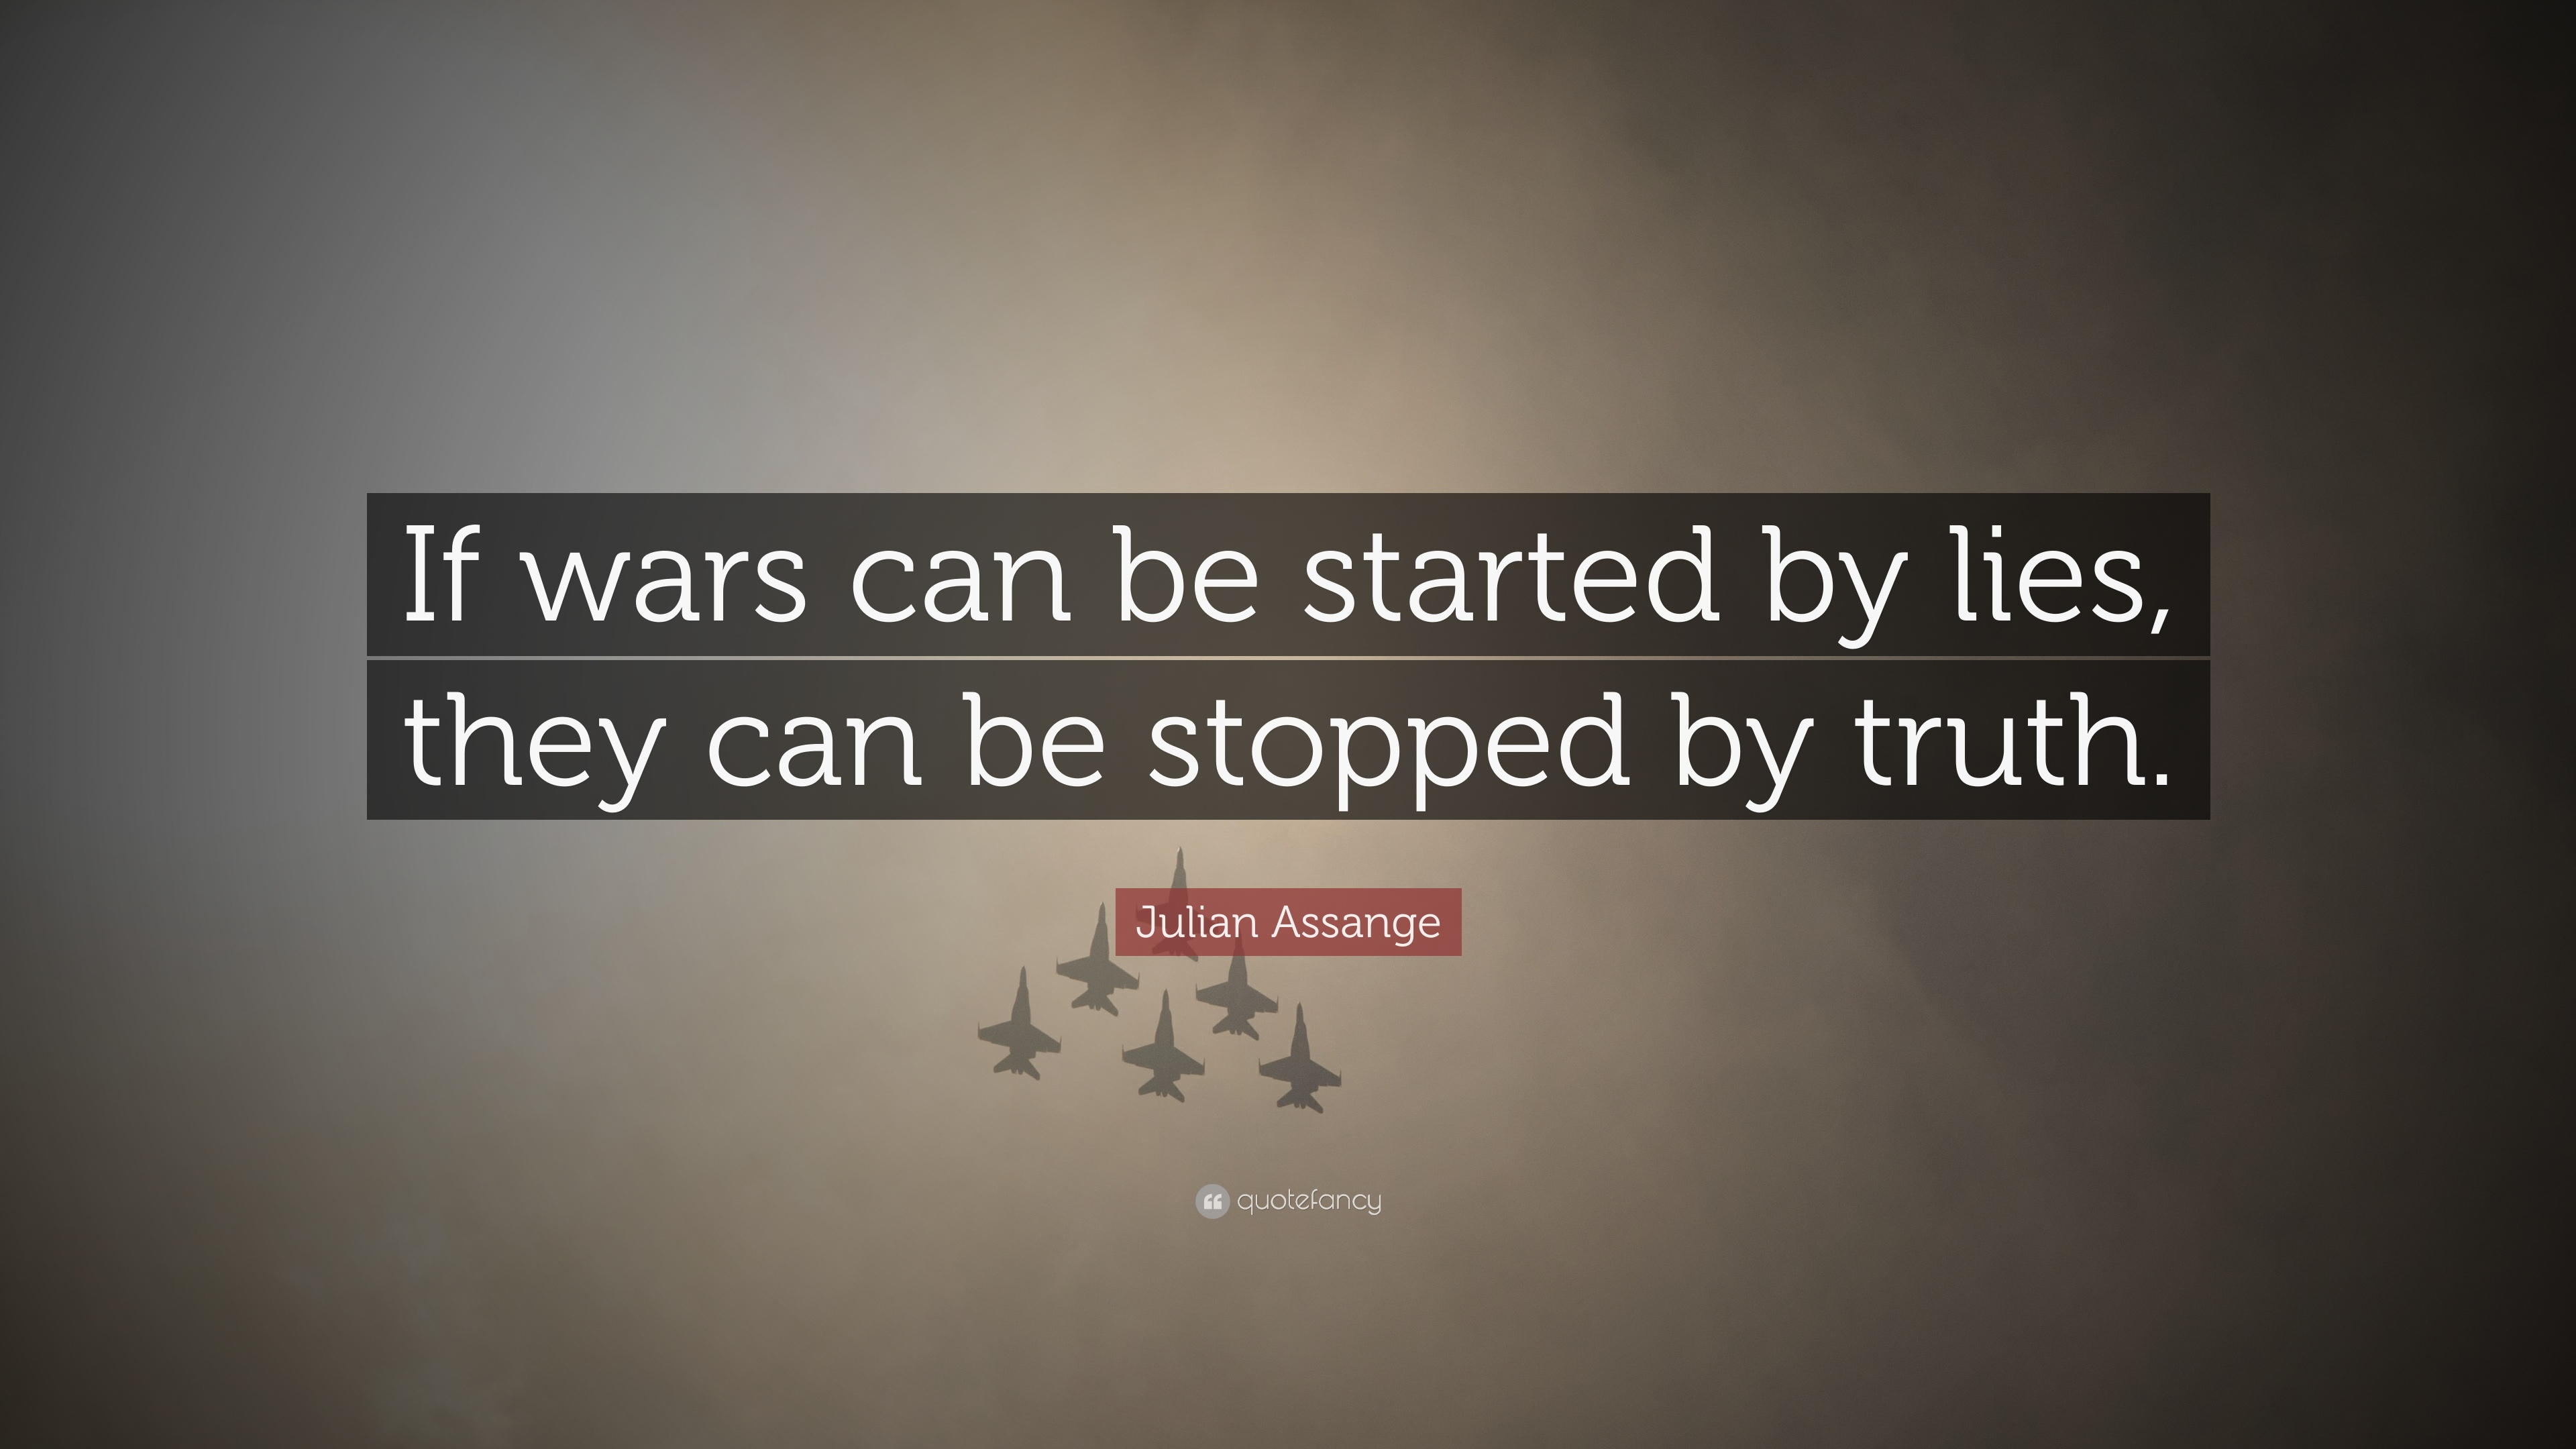 Quotes About Success Wallpaper Julian Assange Quote If Wars Can Be Started By Lies